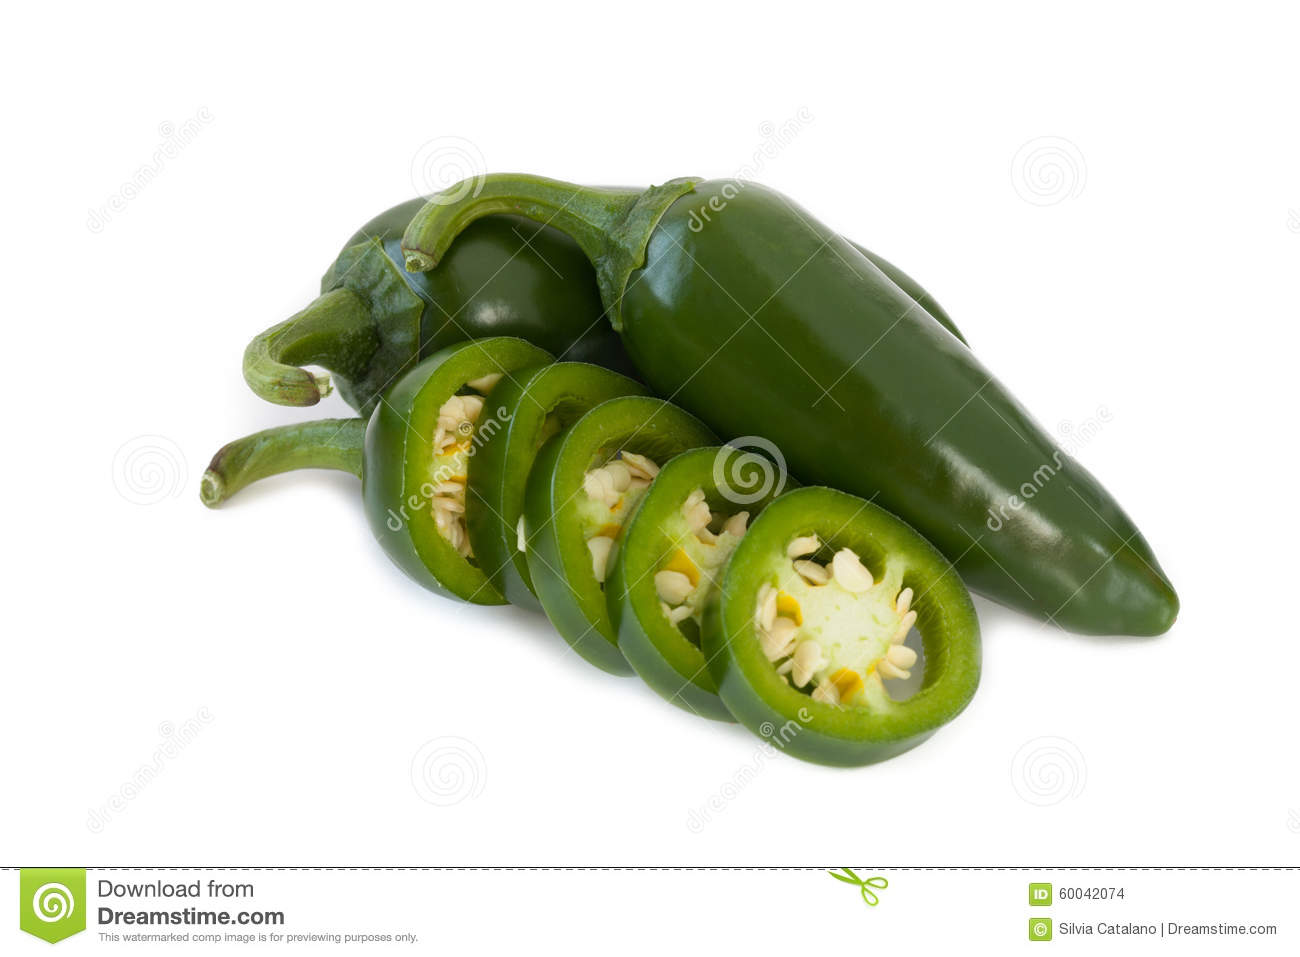 how to cut jalapenos for chili